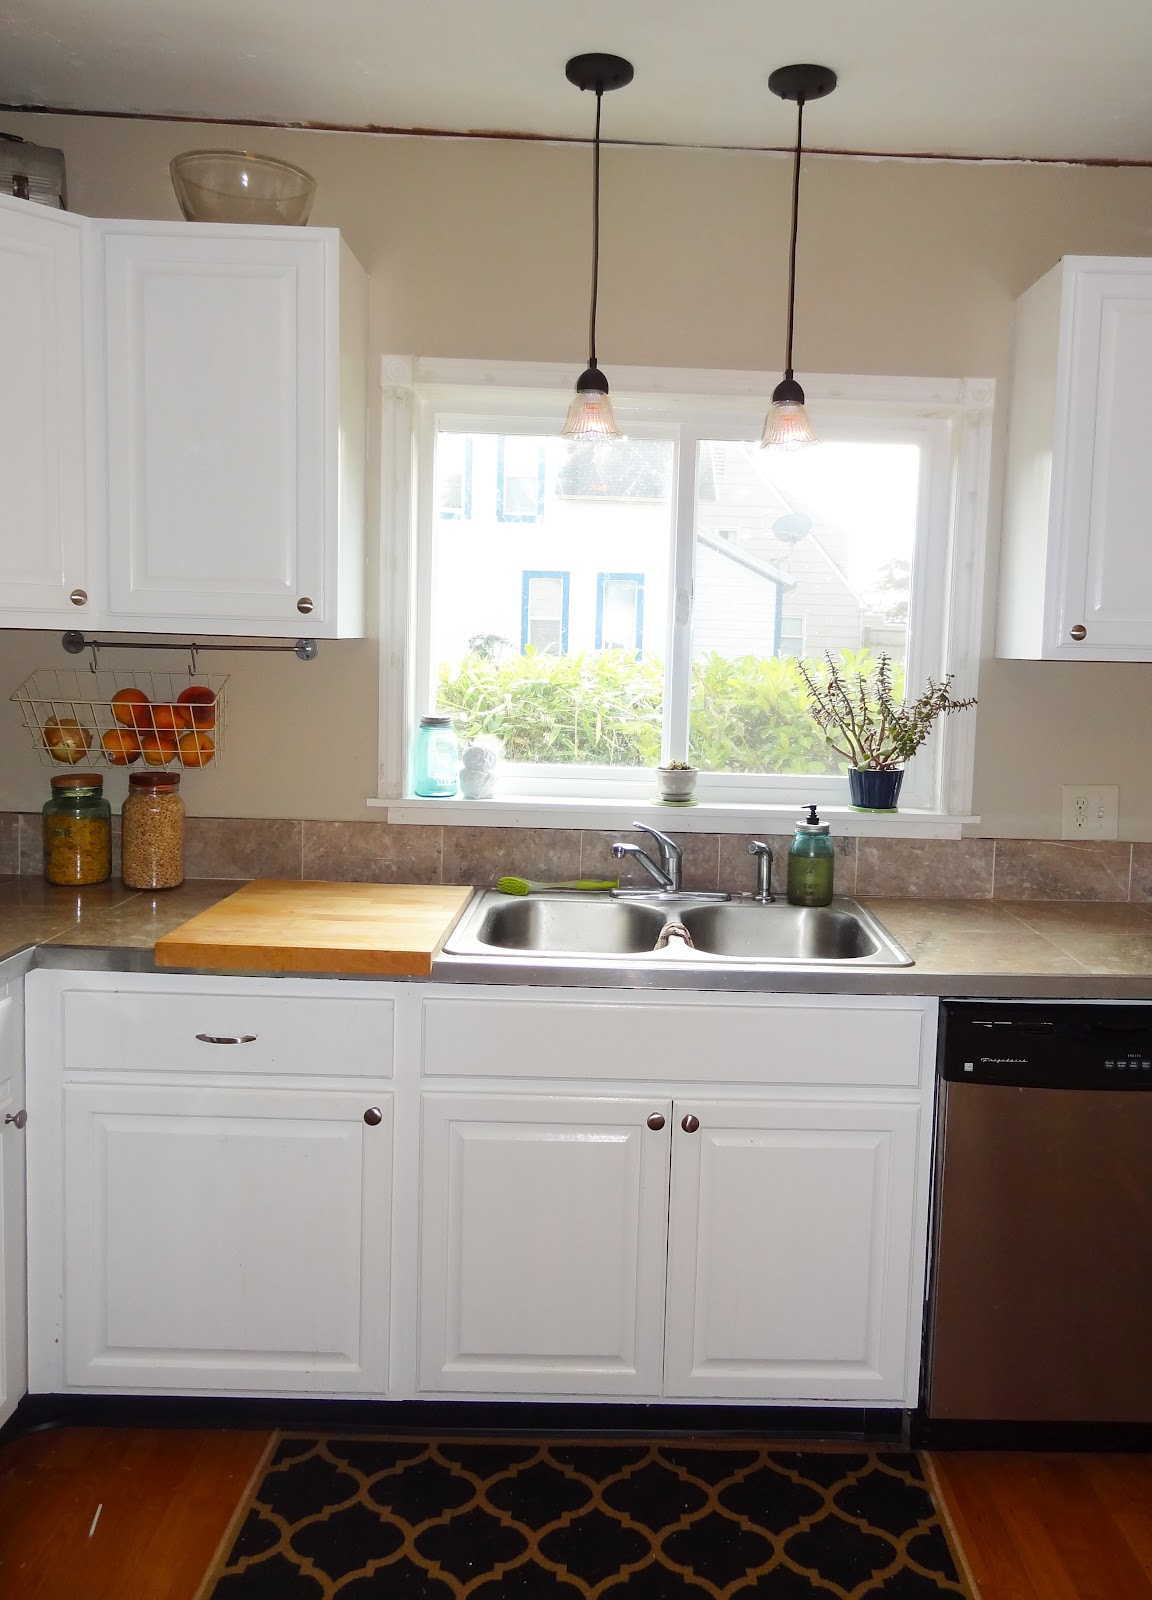 DIY // Update Your Kitchen Lighting on the Cheap | Revamp ...